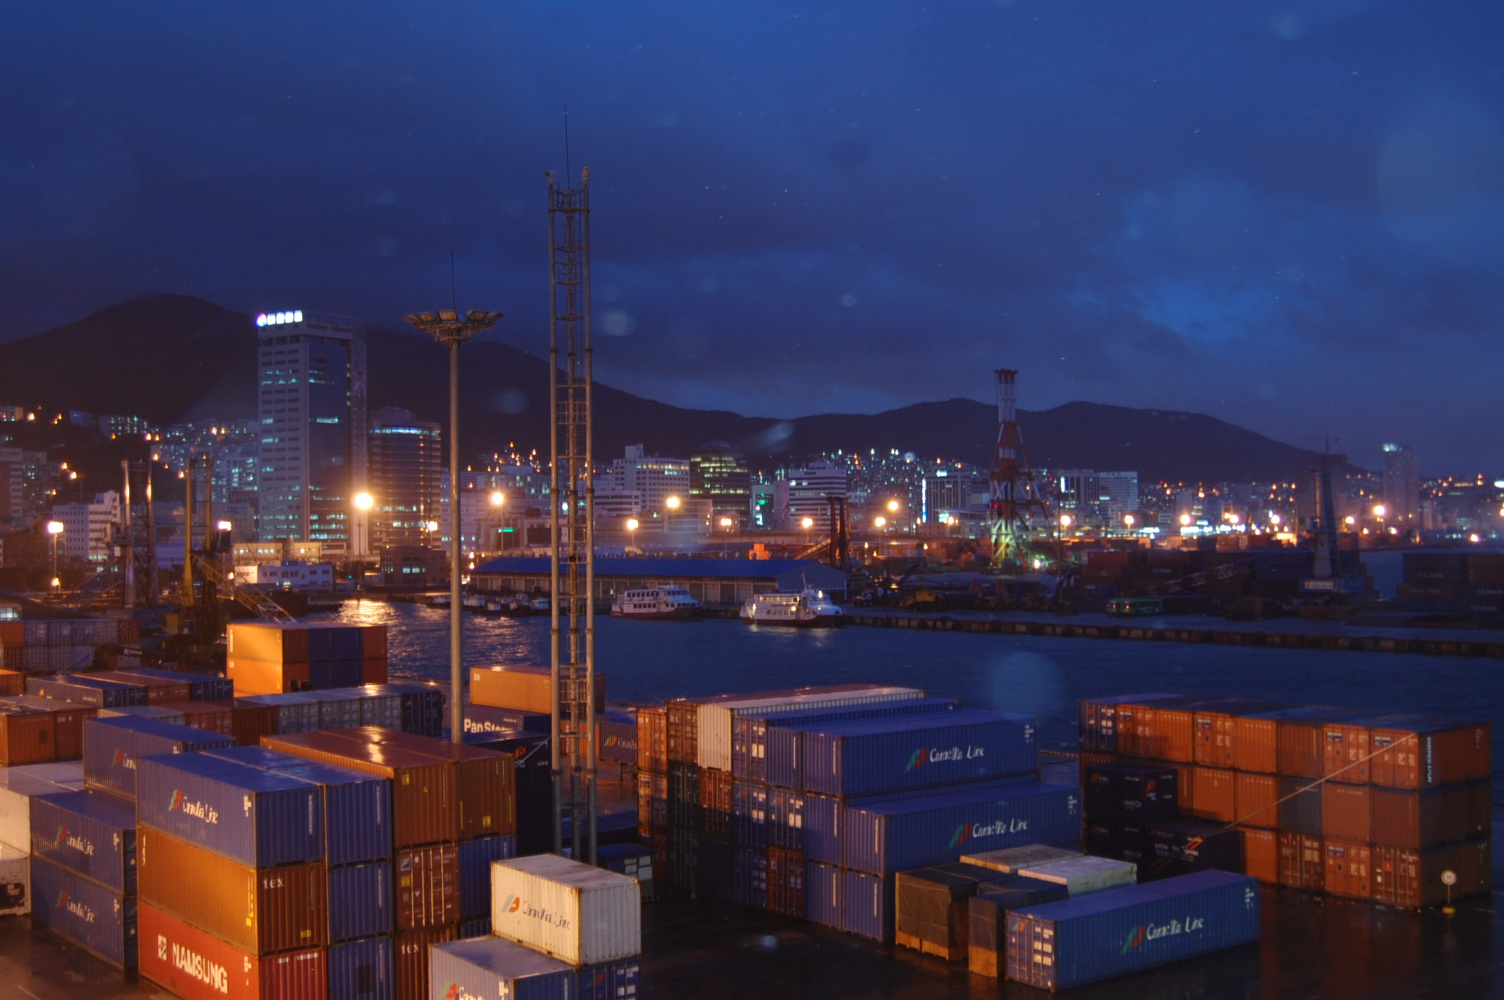 Dusk falls over cargo containers stacked 3-high at Busan Harbour Cargo Terminal. Imports and exports constitute 33.7% of the total national economy. (Photo by Eastberliner via Wikimedia Commons)